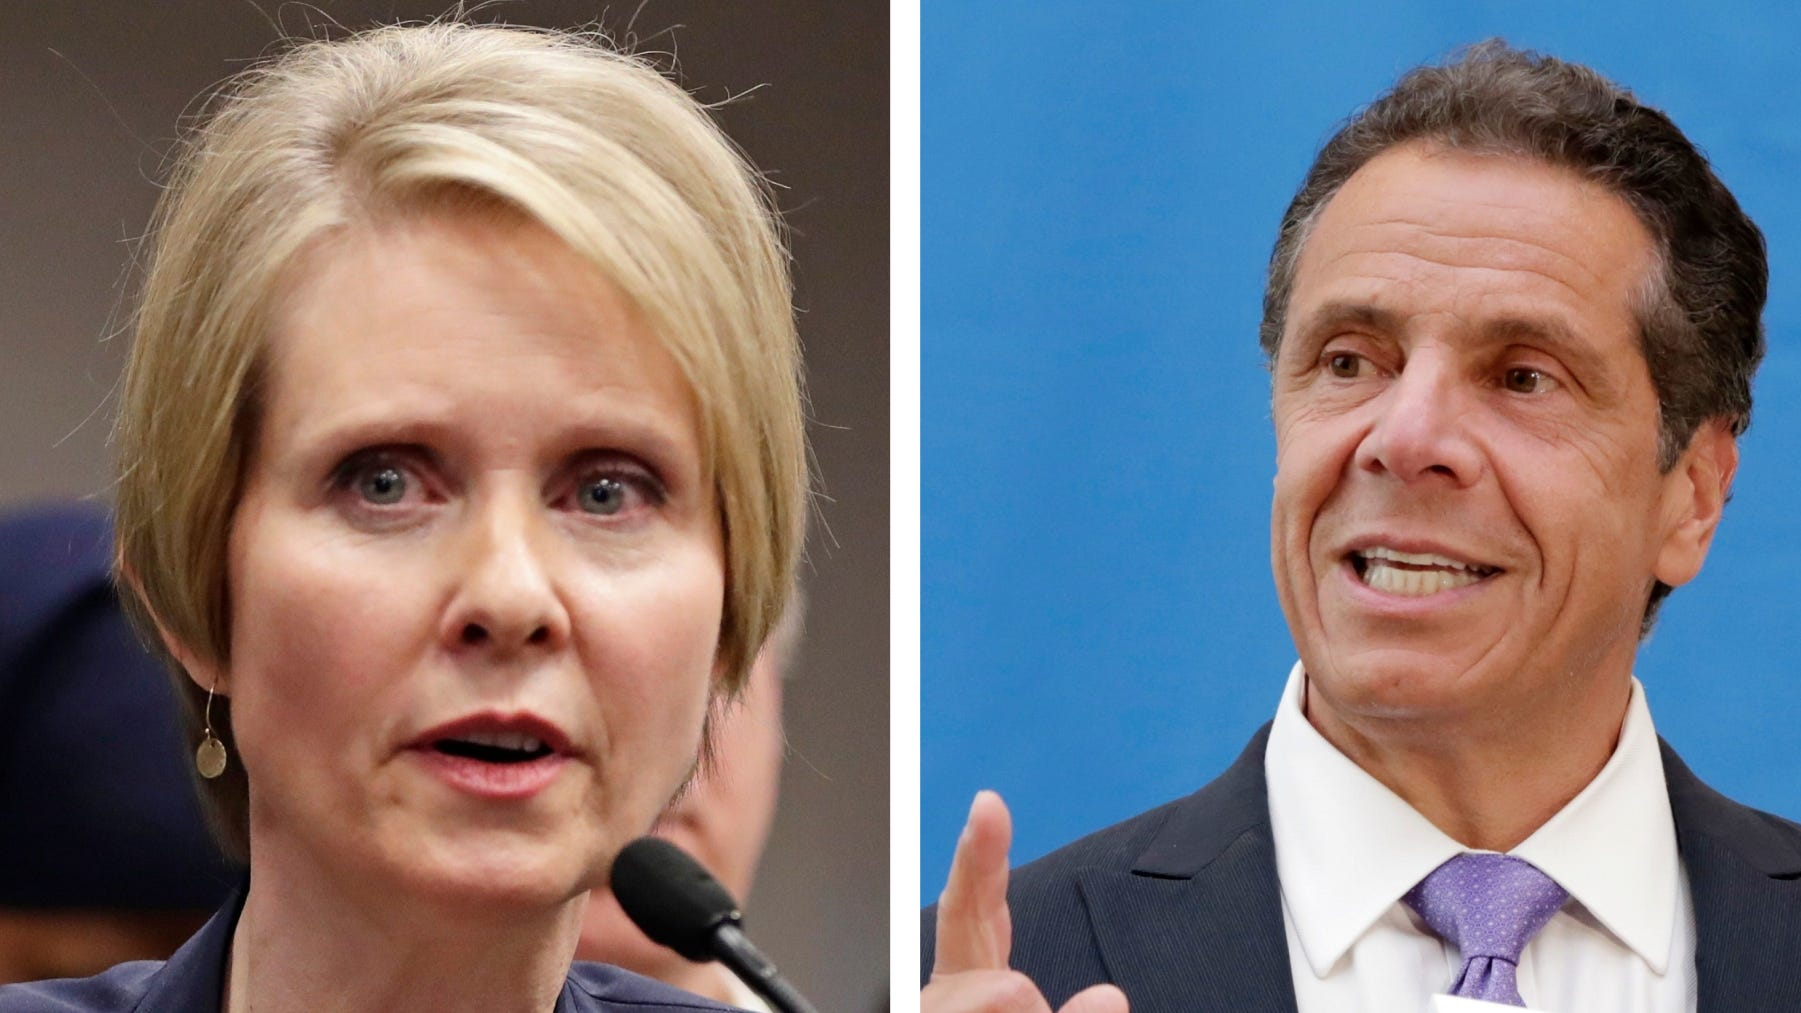 What do you want to ask Andrew Cuomo or Cynthia Nixon about public education?